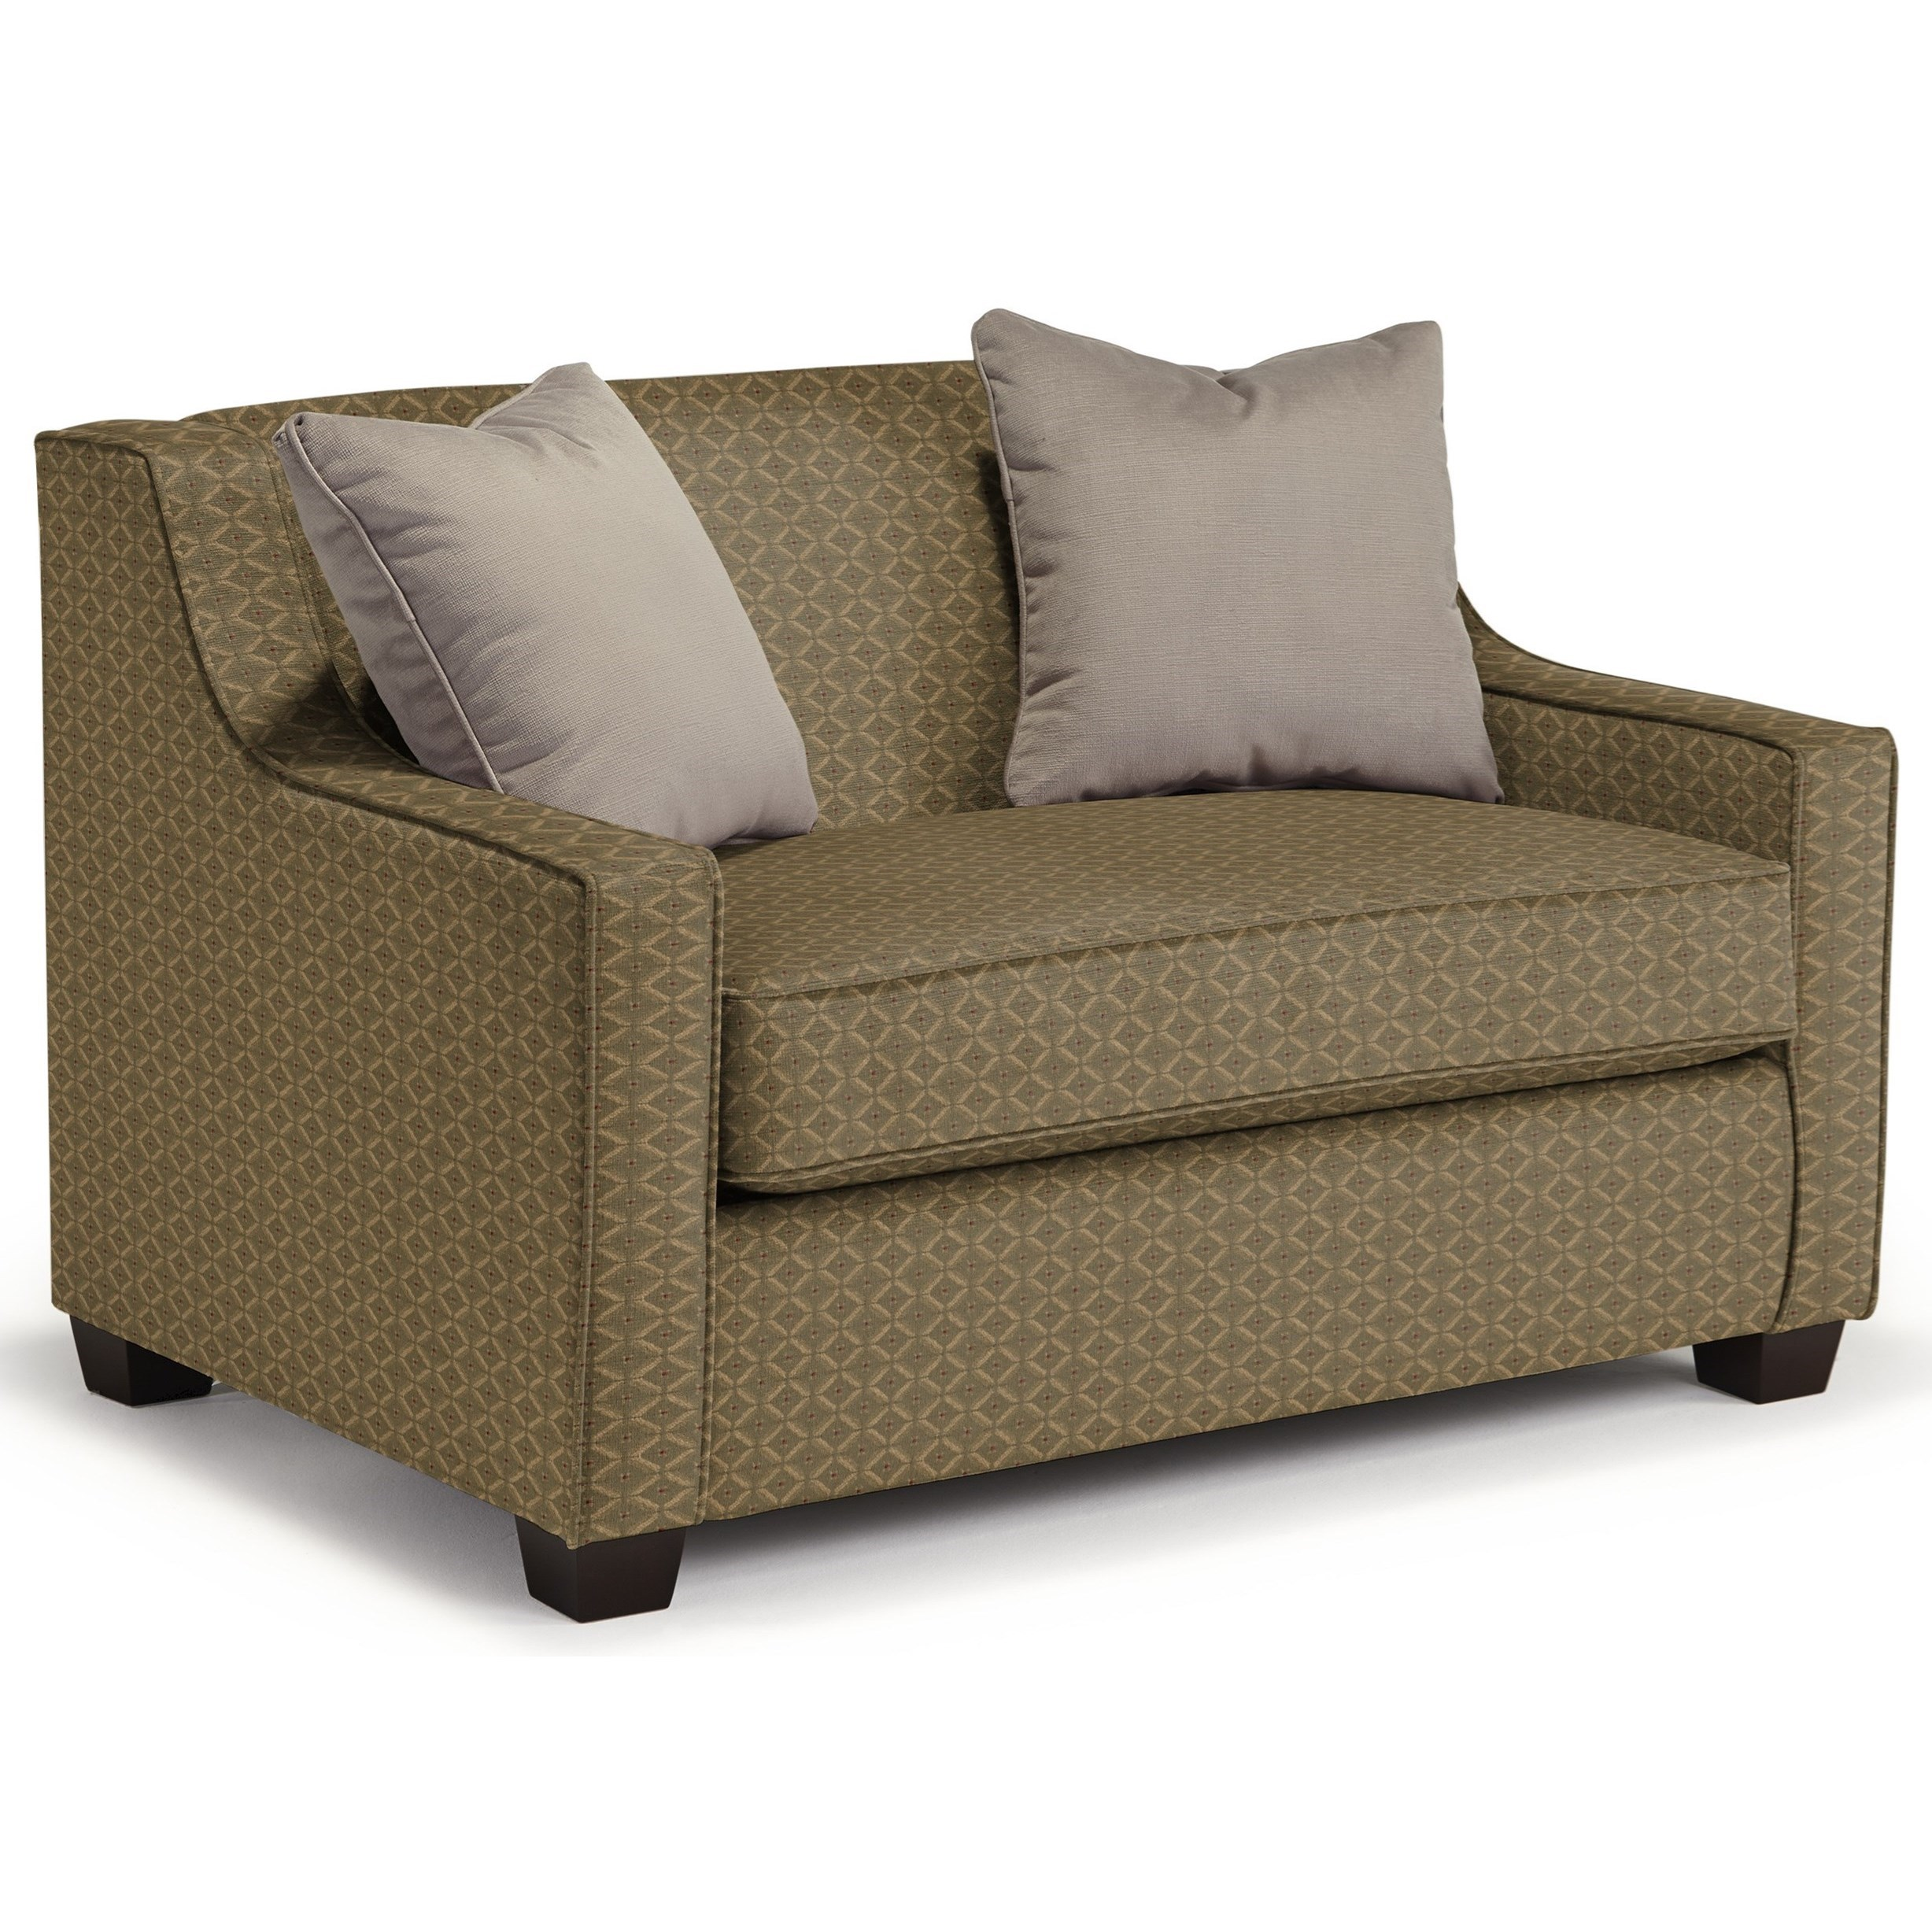 Marinette Twin Sleeper Chair by Best Home Furnishings at Lapeer Furniture & Mattress Center